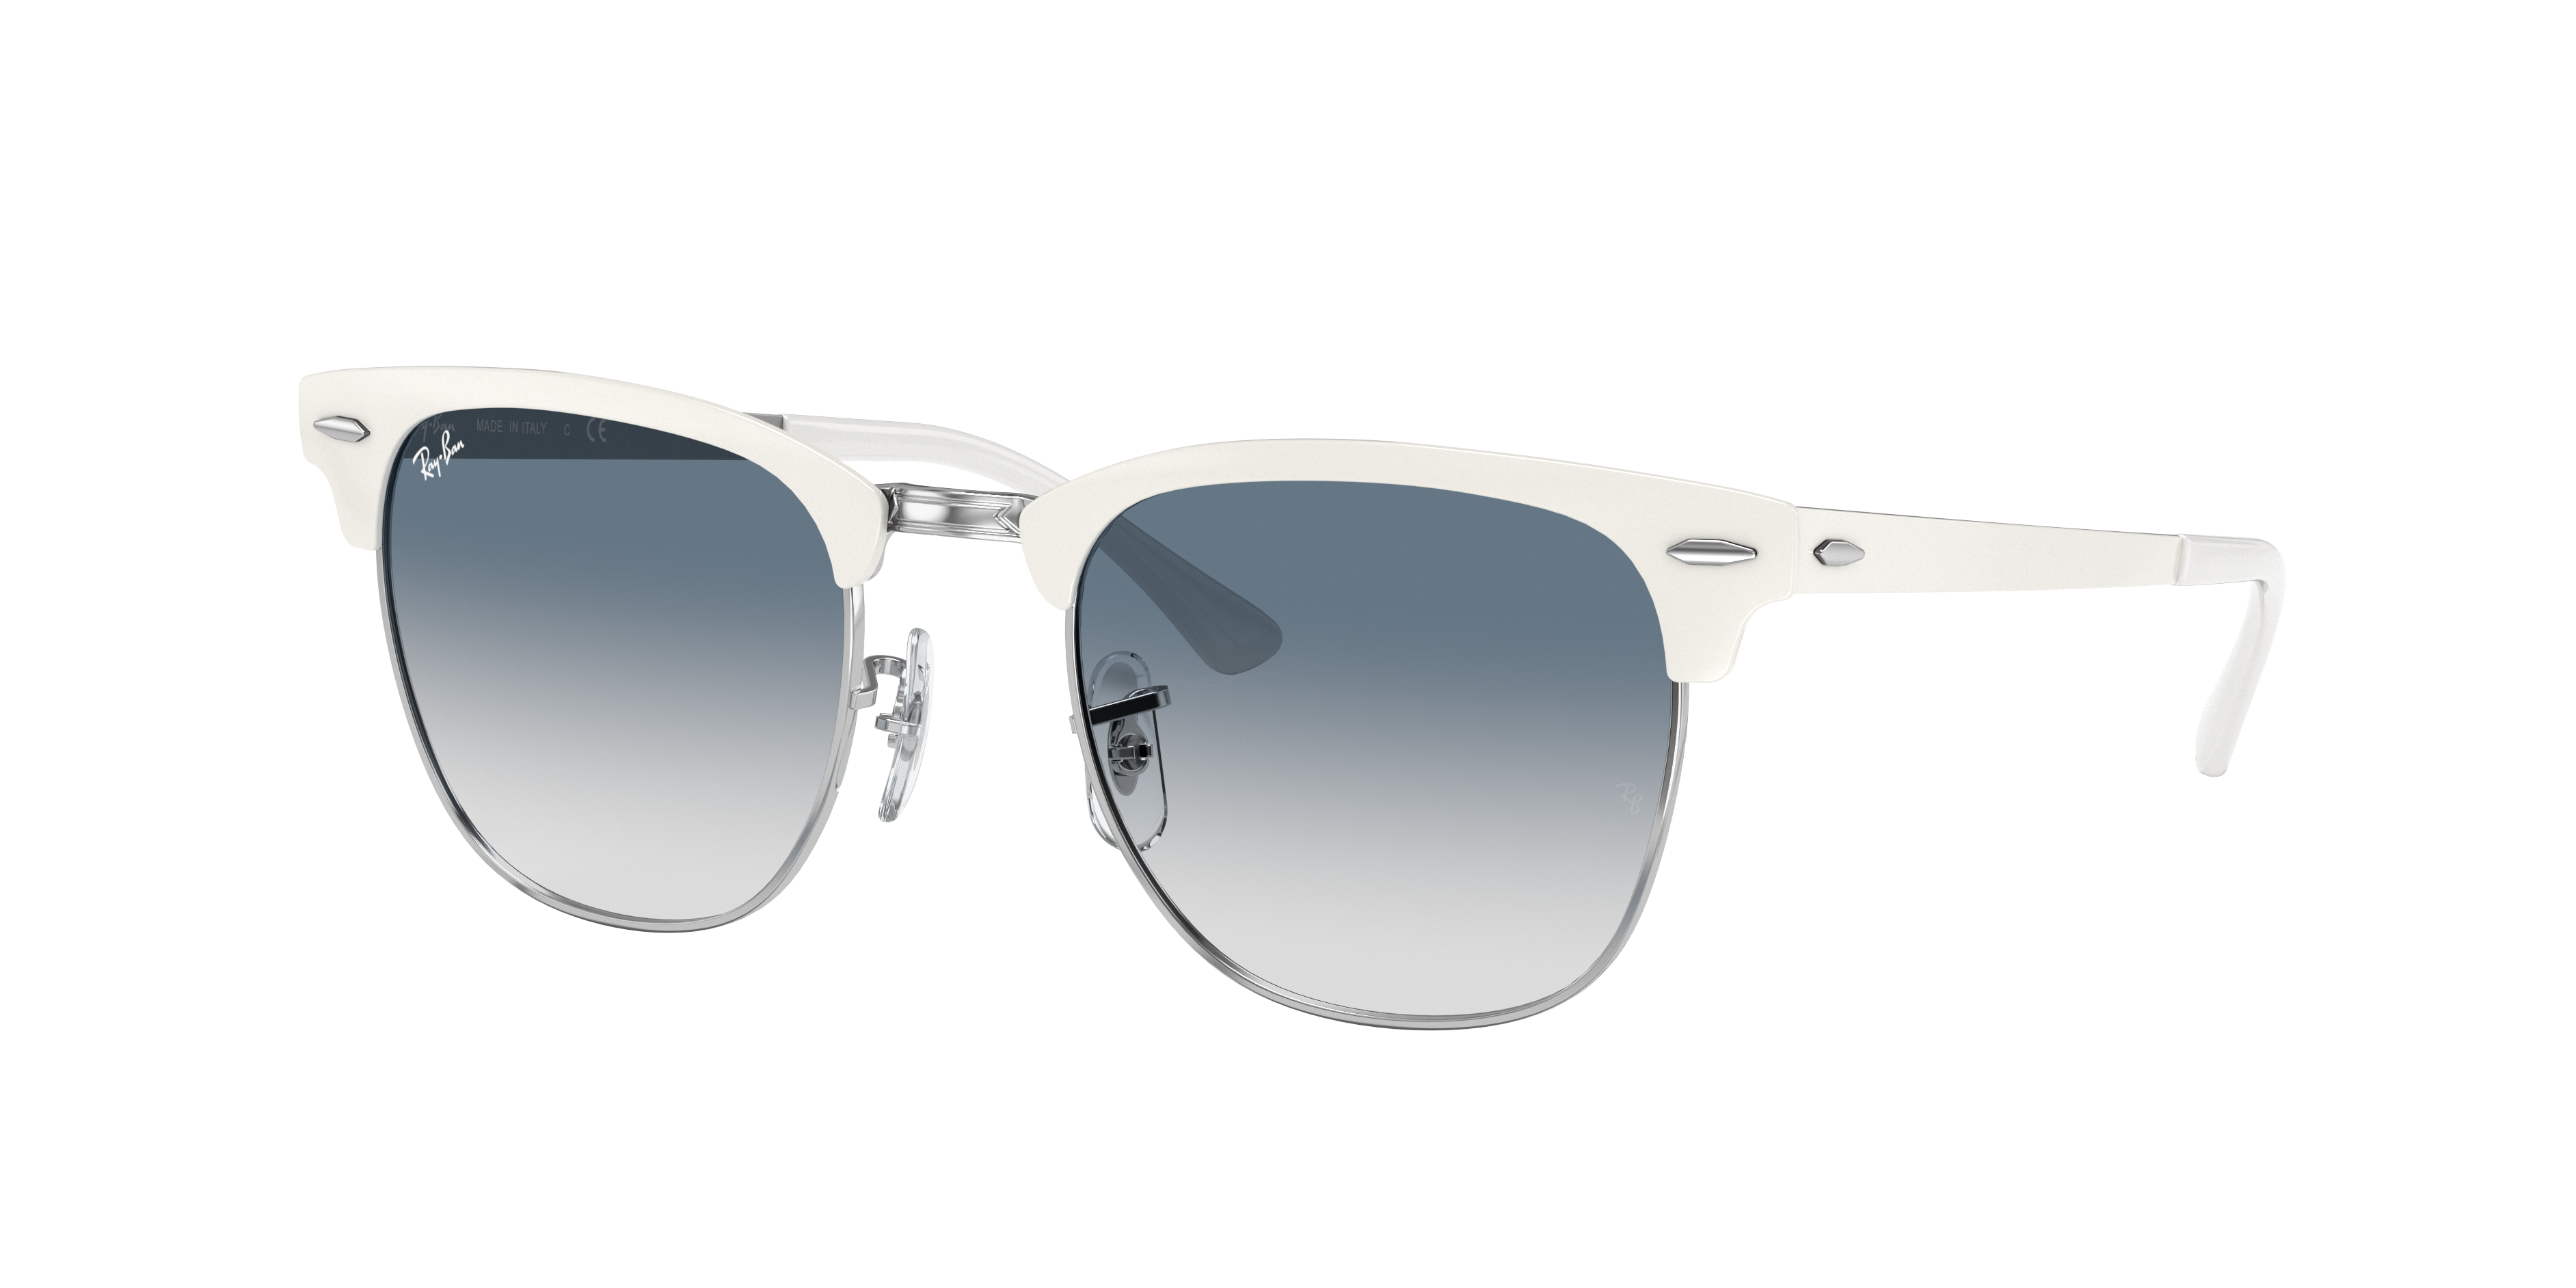 Ray-Ban Clubmaster Metal White, Blue Lenses - RB3716